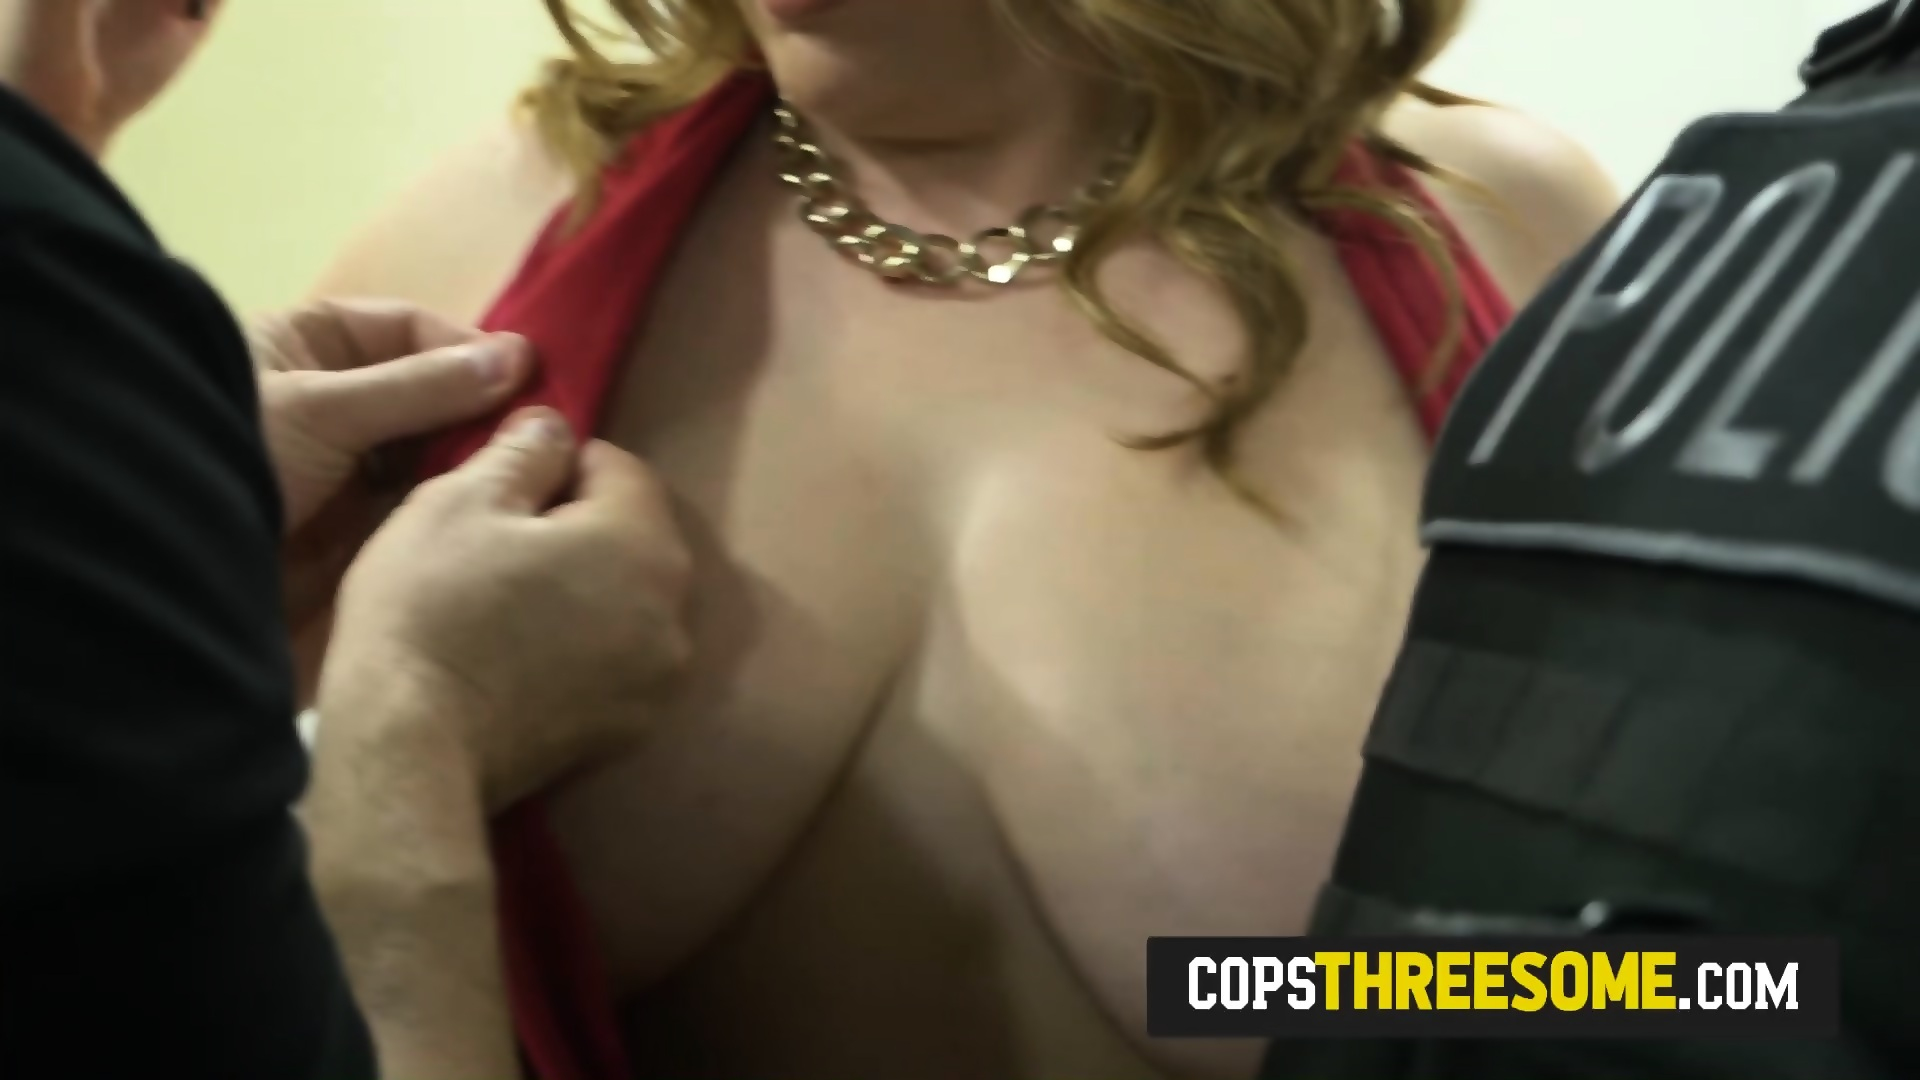 Milf cops trap skinny slut lover and take him to police station - scene 1